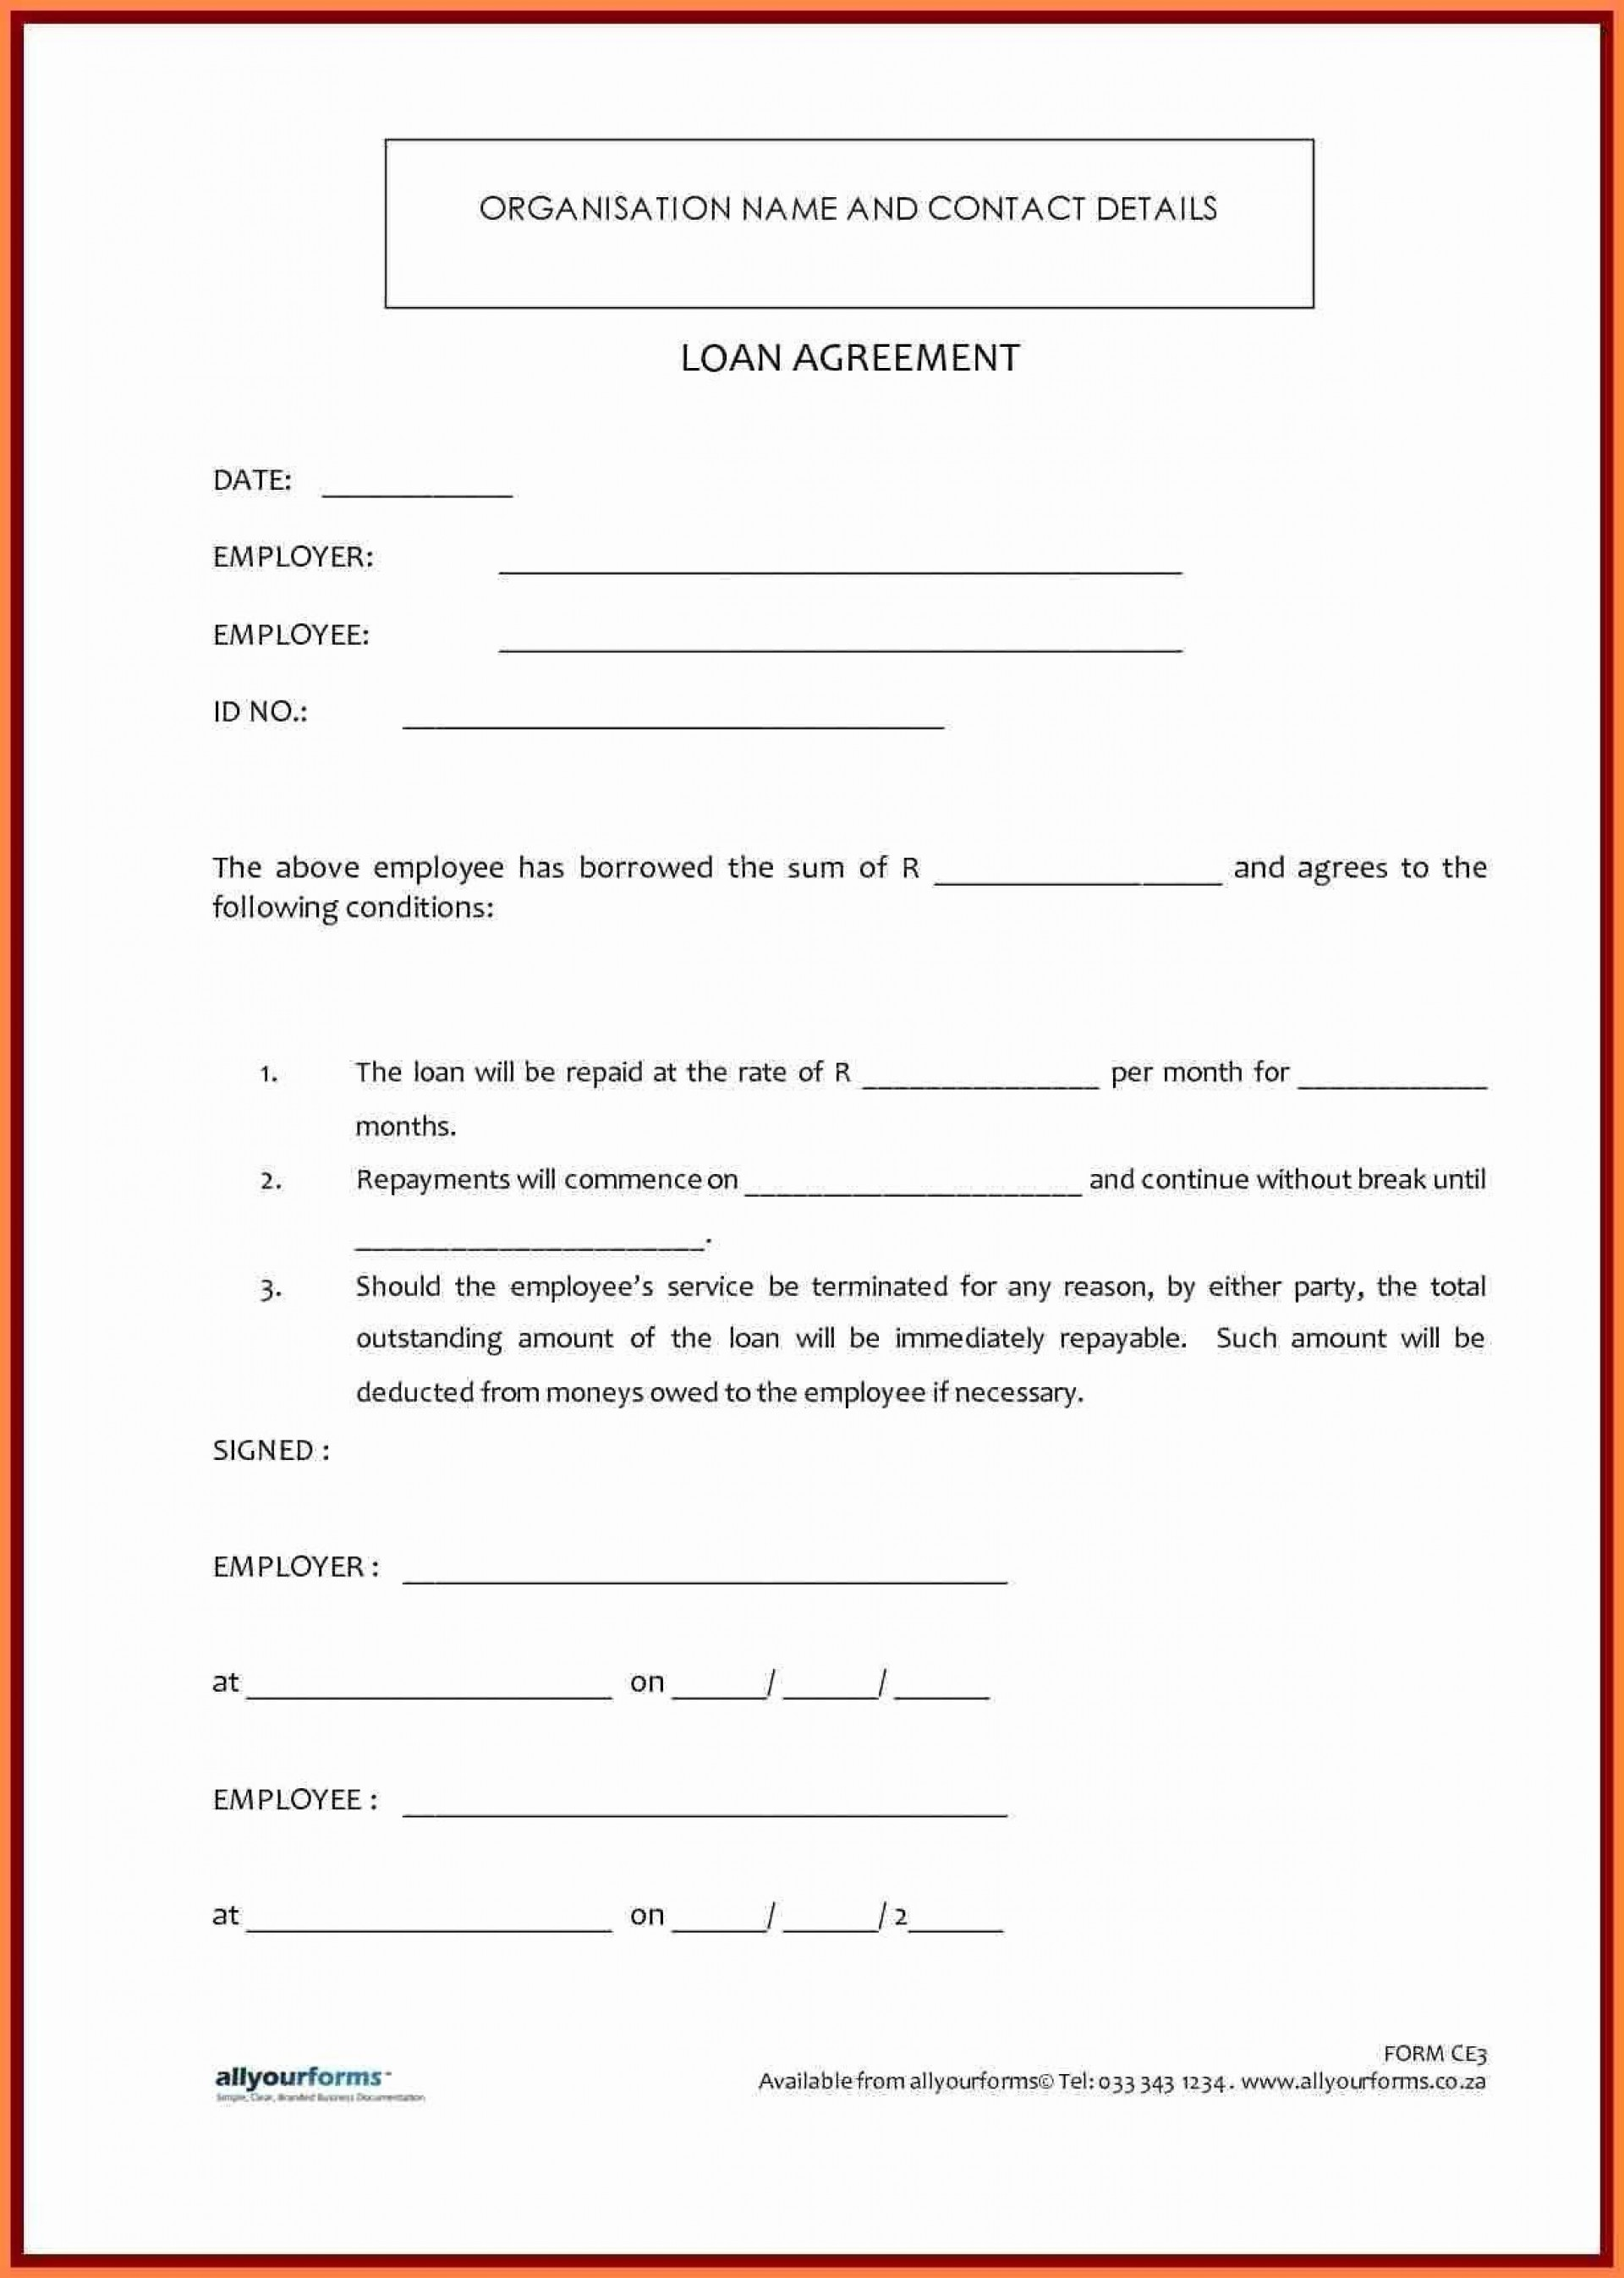 000 Impressive Simple Family Loan Agreement Template Australia Idea 1920